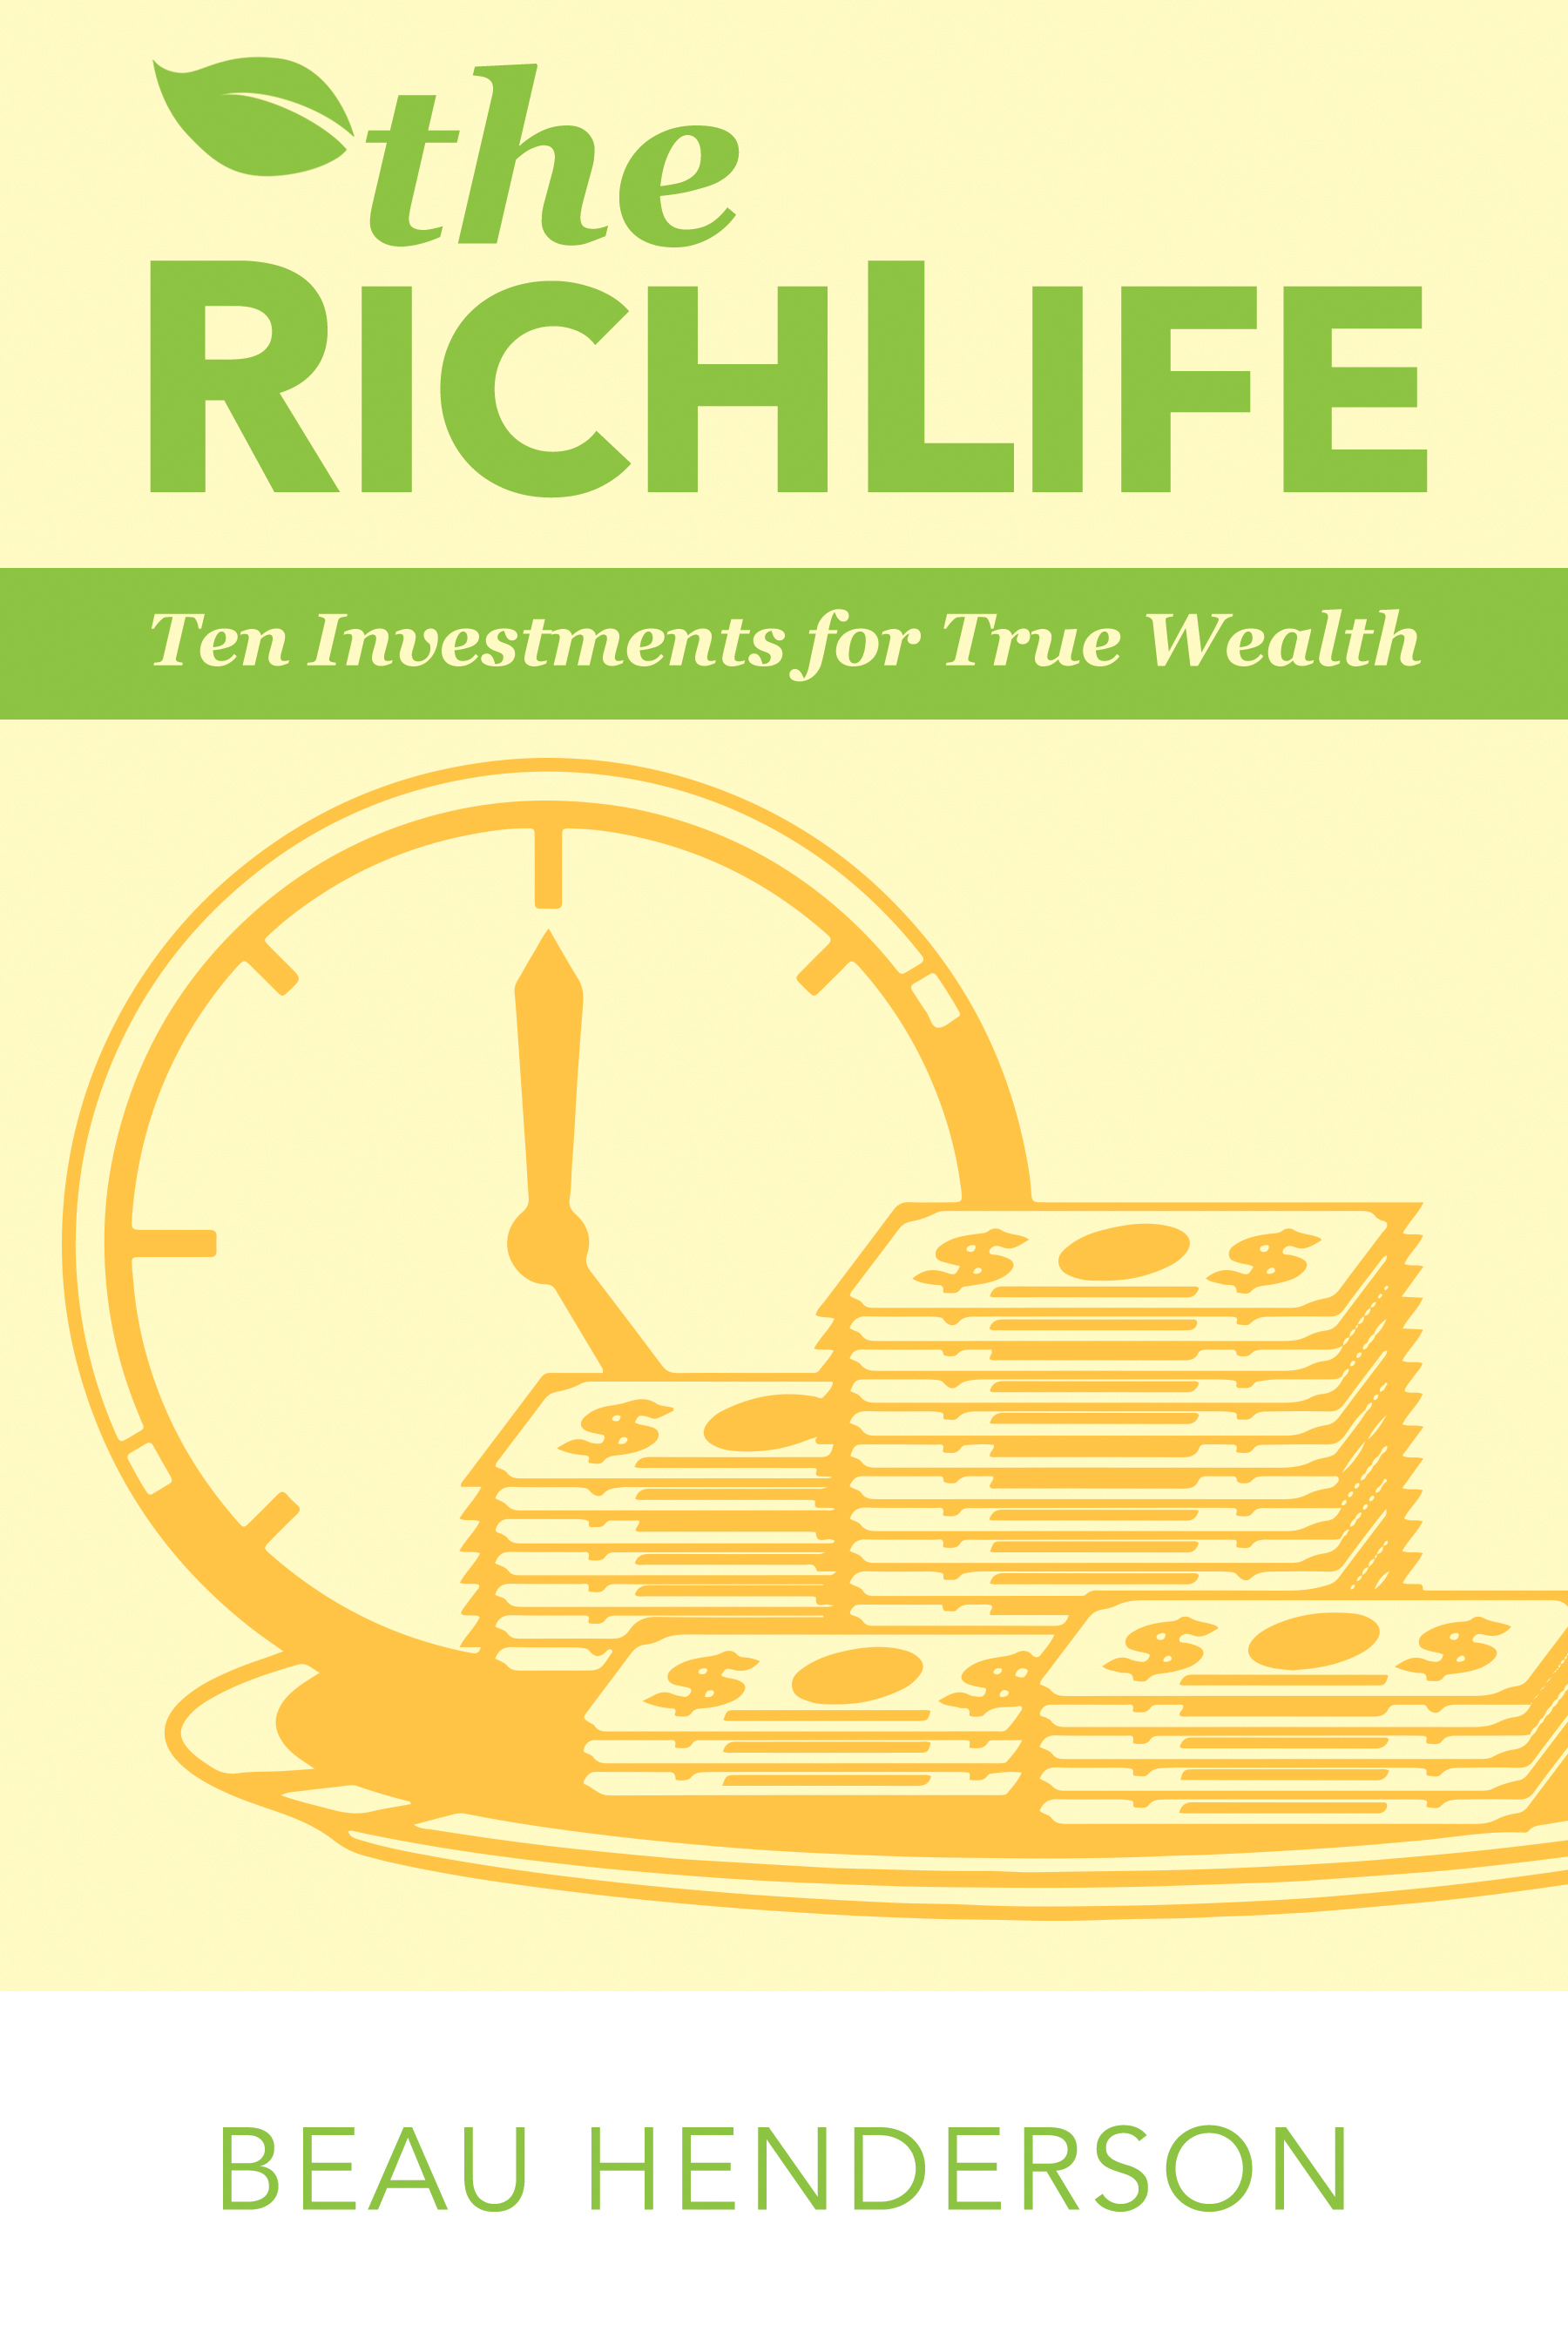 The RichLife - Beau Henderson